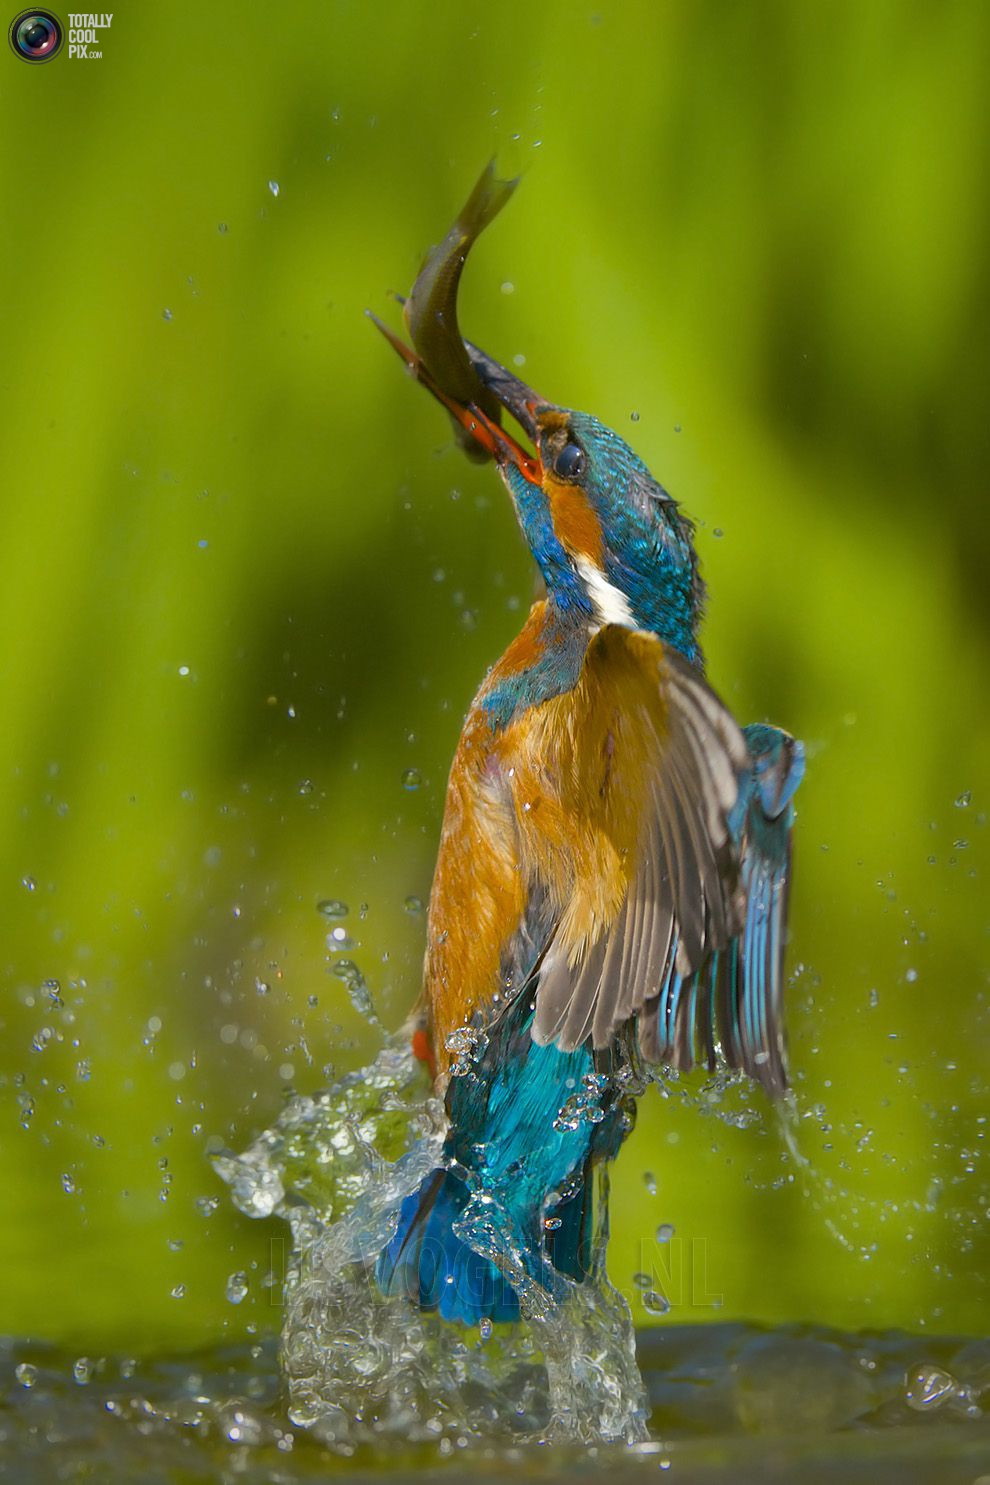 Stunning footage of catching fish by Kingfisher 21